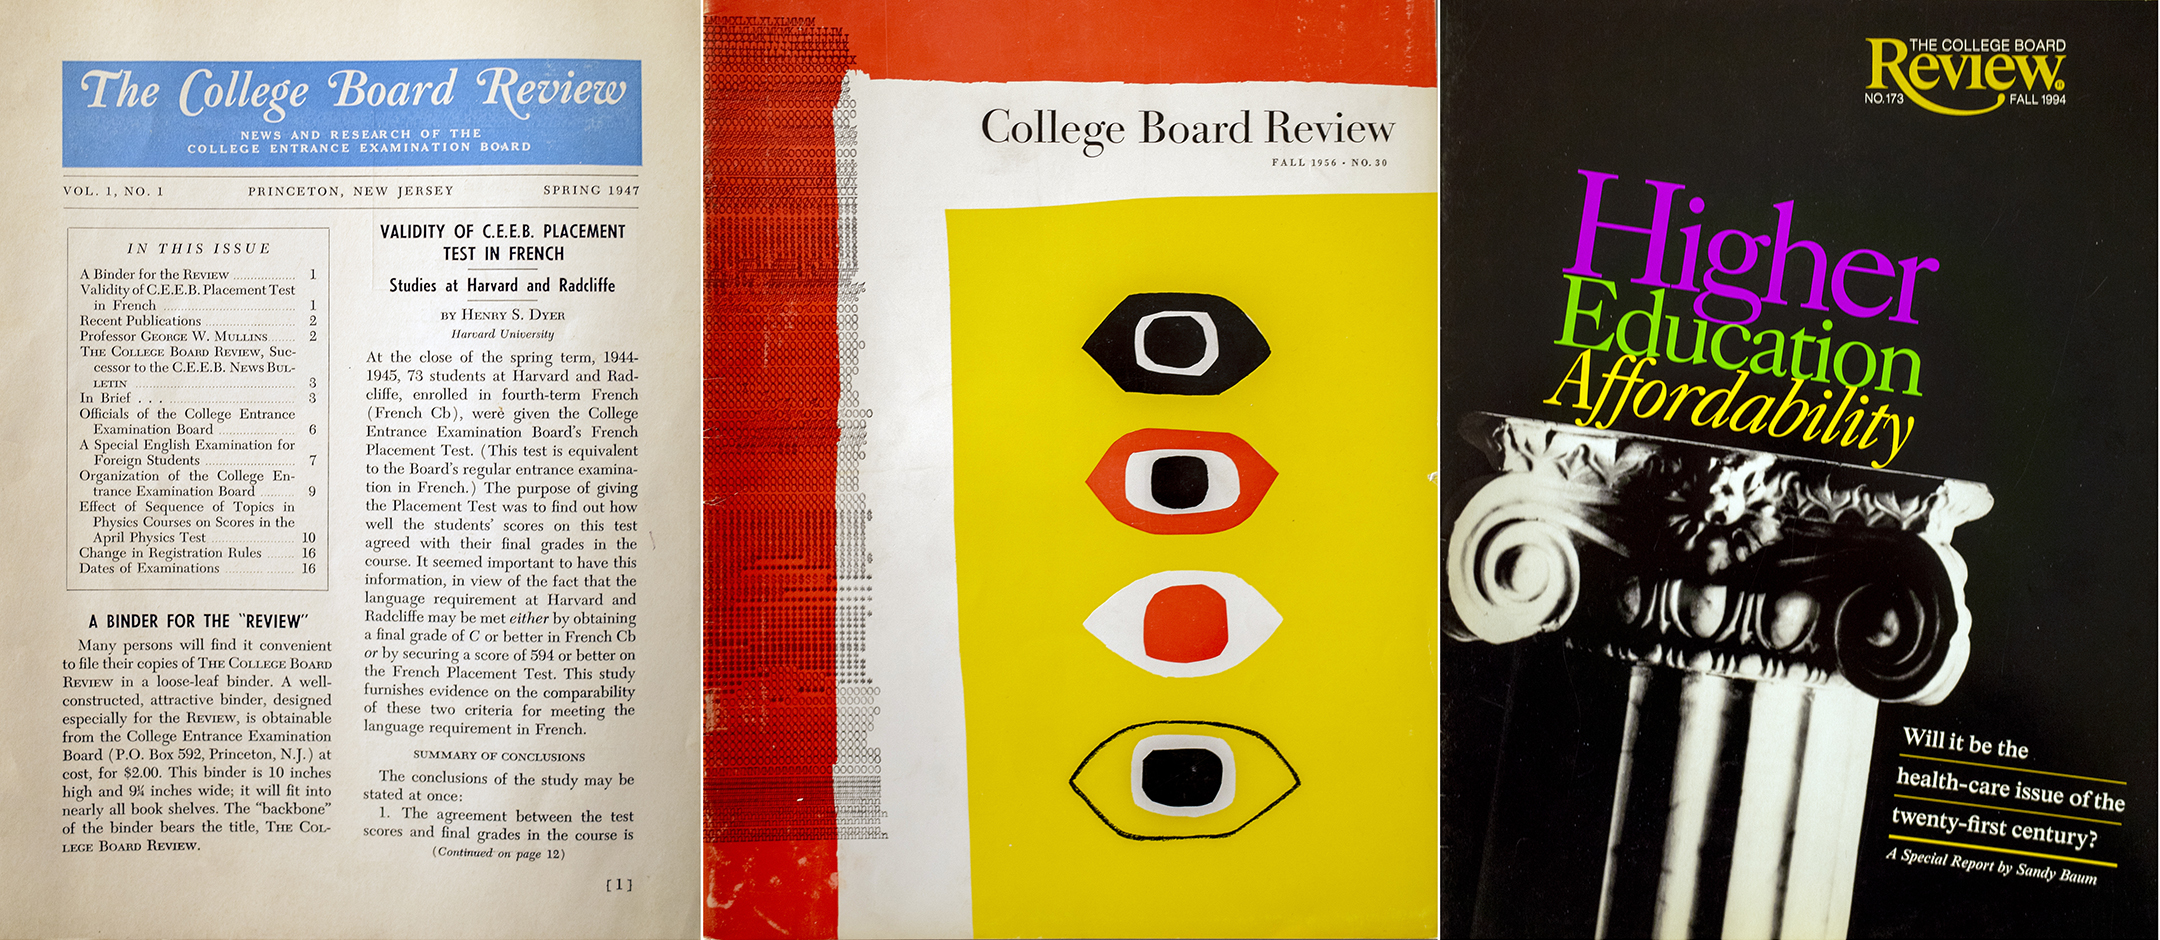 a series of three covers of the college board review magazine. the first, at left, is black text on white paper. the second, in the center, is an abstract piece of art in orange, white, black and red featuring four eye shaped objects in the center. the third, at right, is black with the image of the top of a classical column with the words higher education affordability in purple, green, and yellow letters